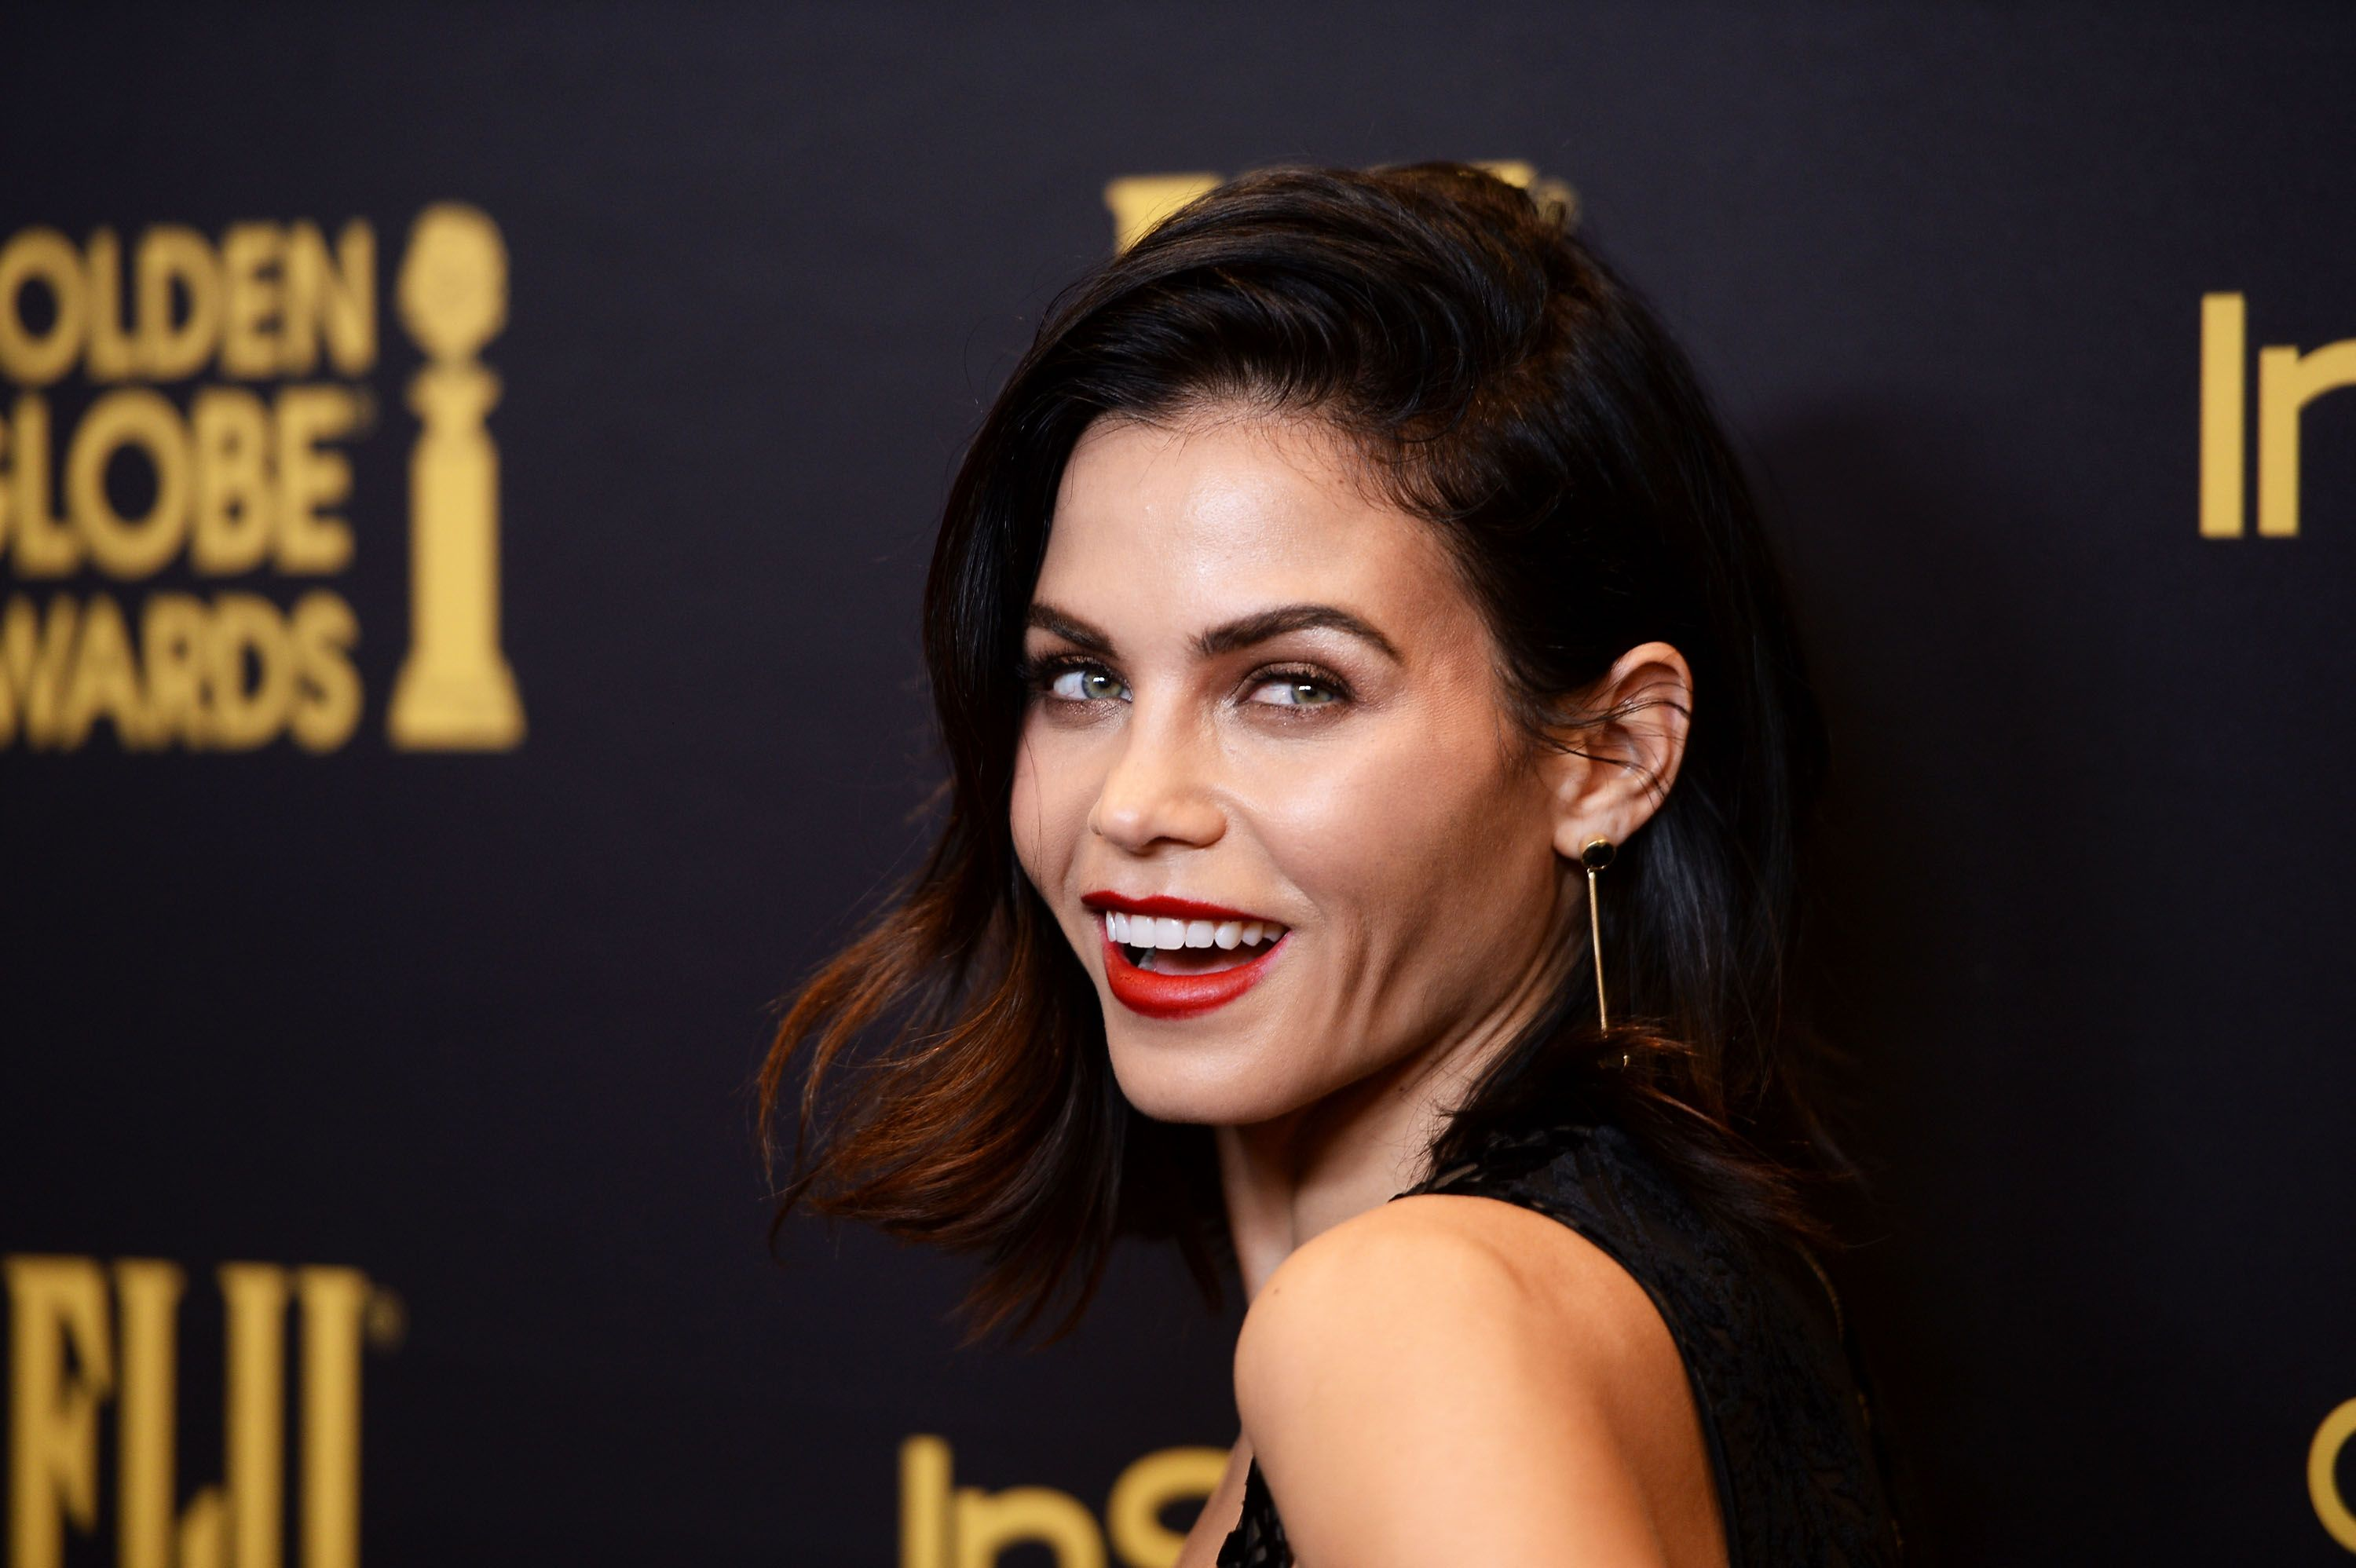 Jenna Dewan Tatum arrives at the Hollywood Foreign Press Association and InStyle celebrate the 2017 Golden Globe Award Season at Catch LA on November 10, 2016 in West Hollywood, California | Photo: Getty Images